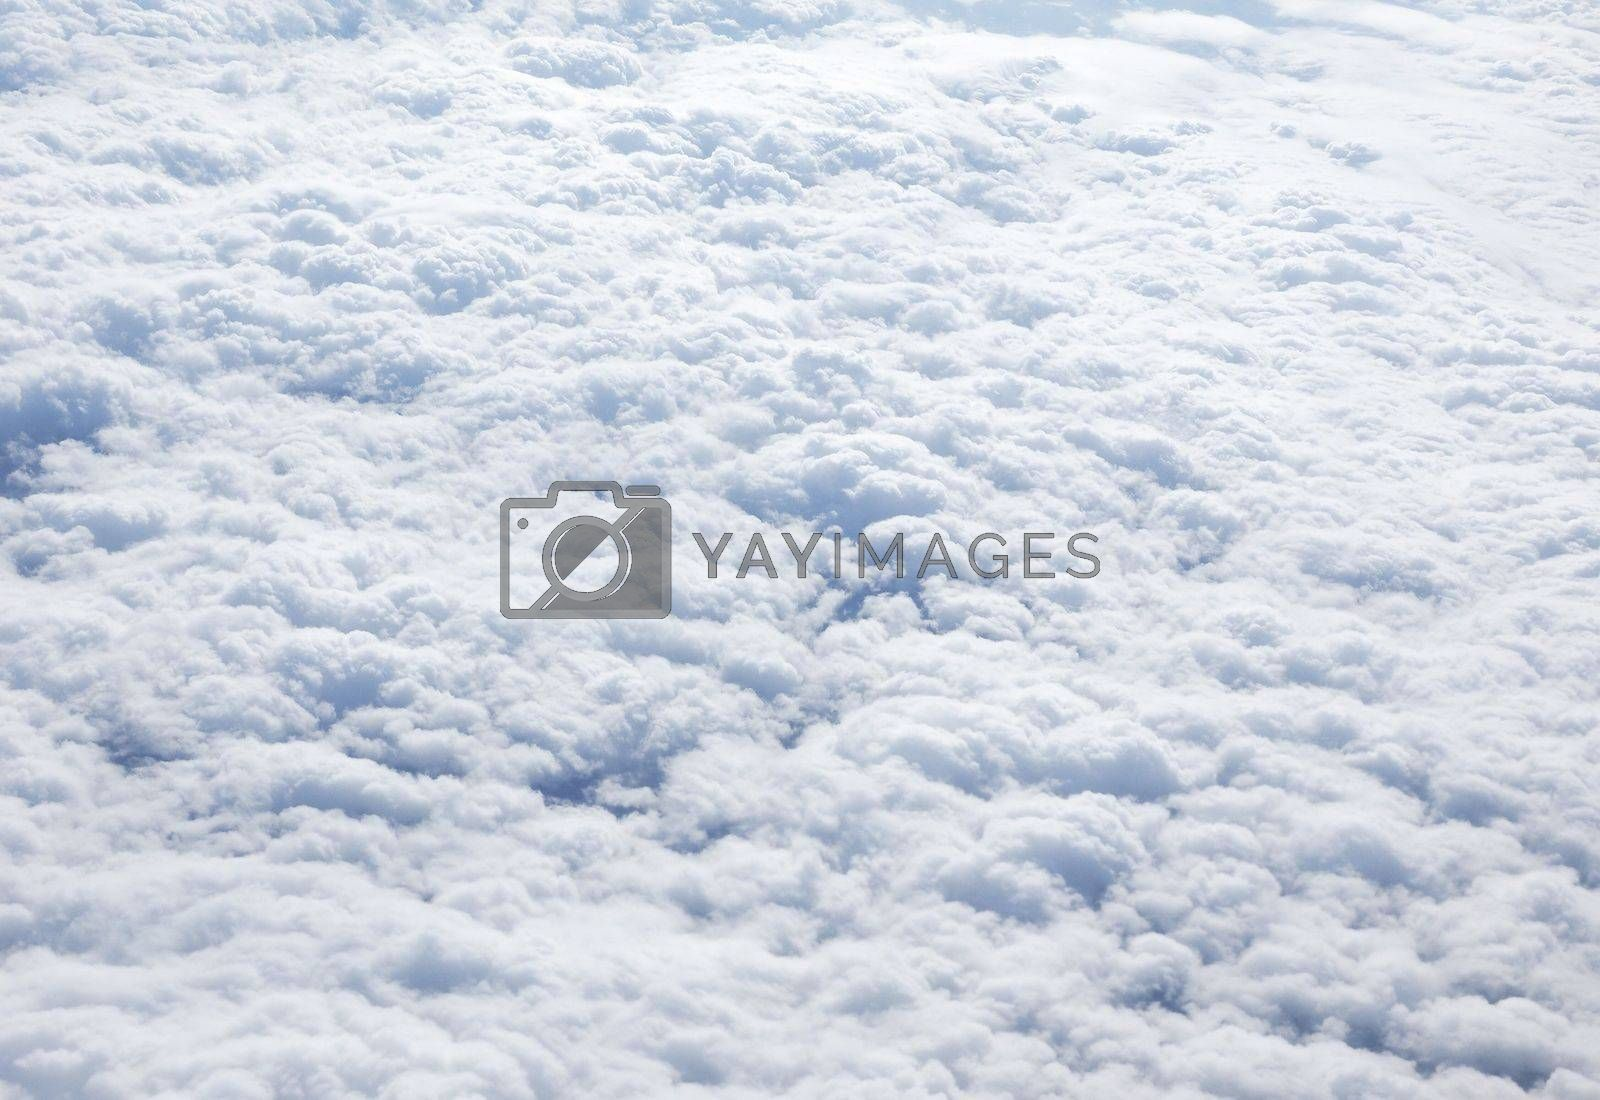 Clouds seen from plane background by claudiodivizia